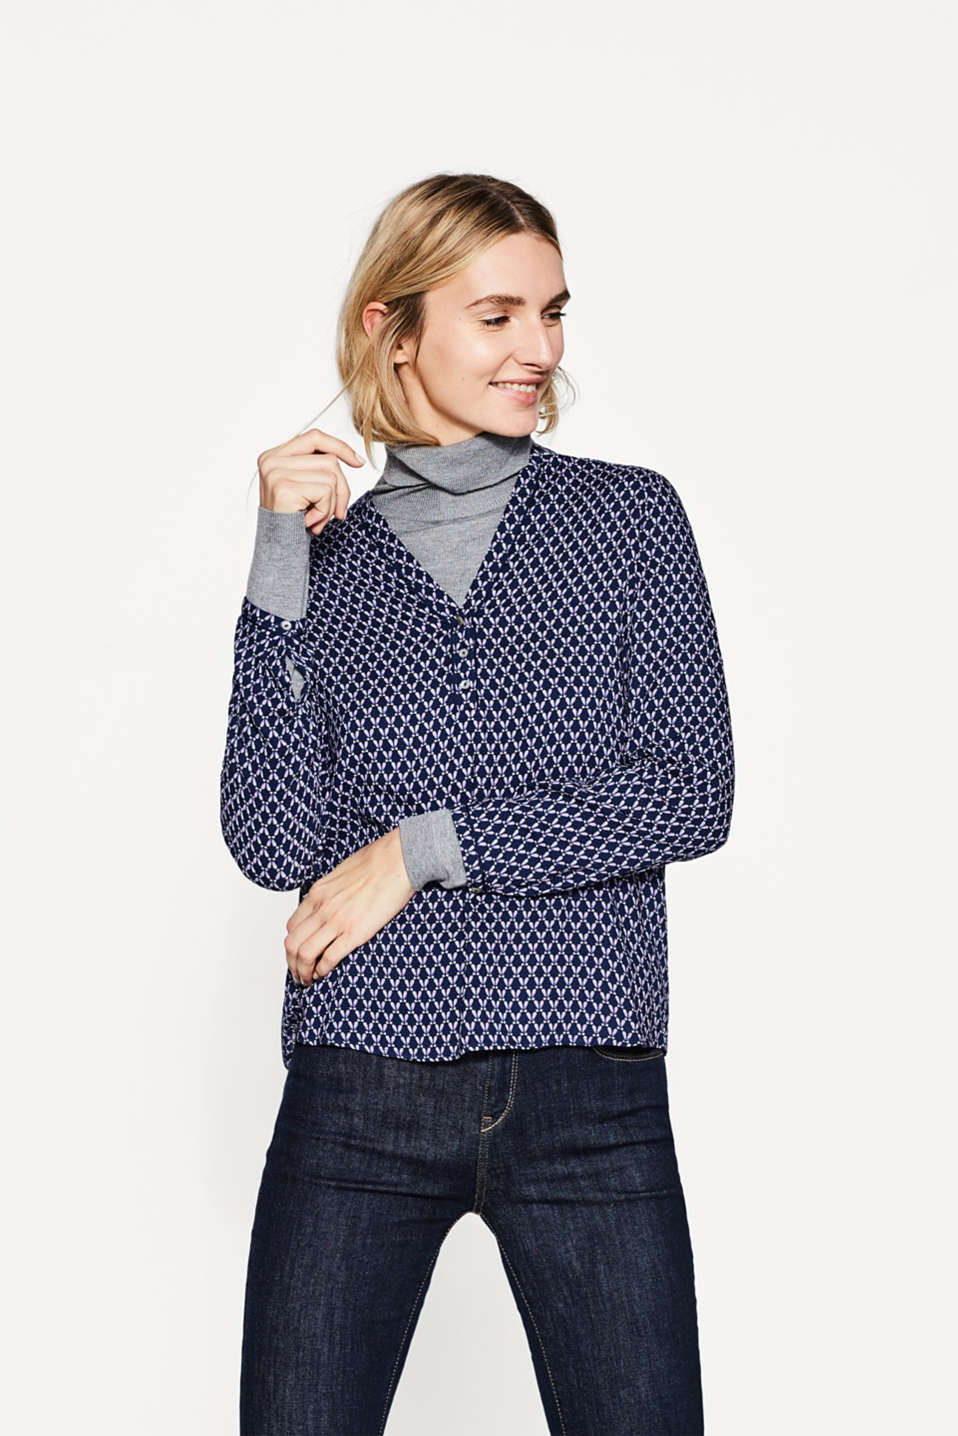 Esprit - Flowing jacquard blouse, mother-of-pearls